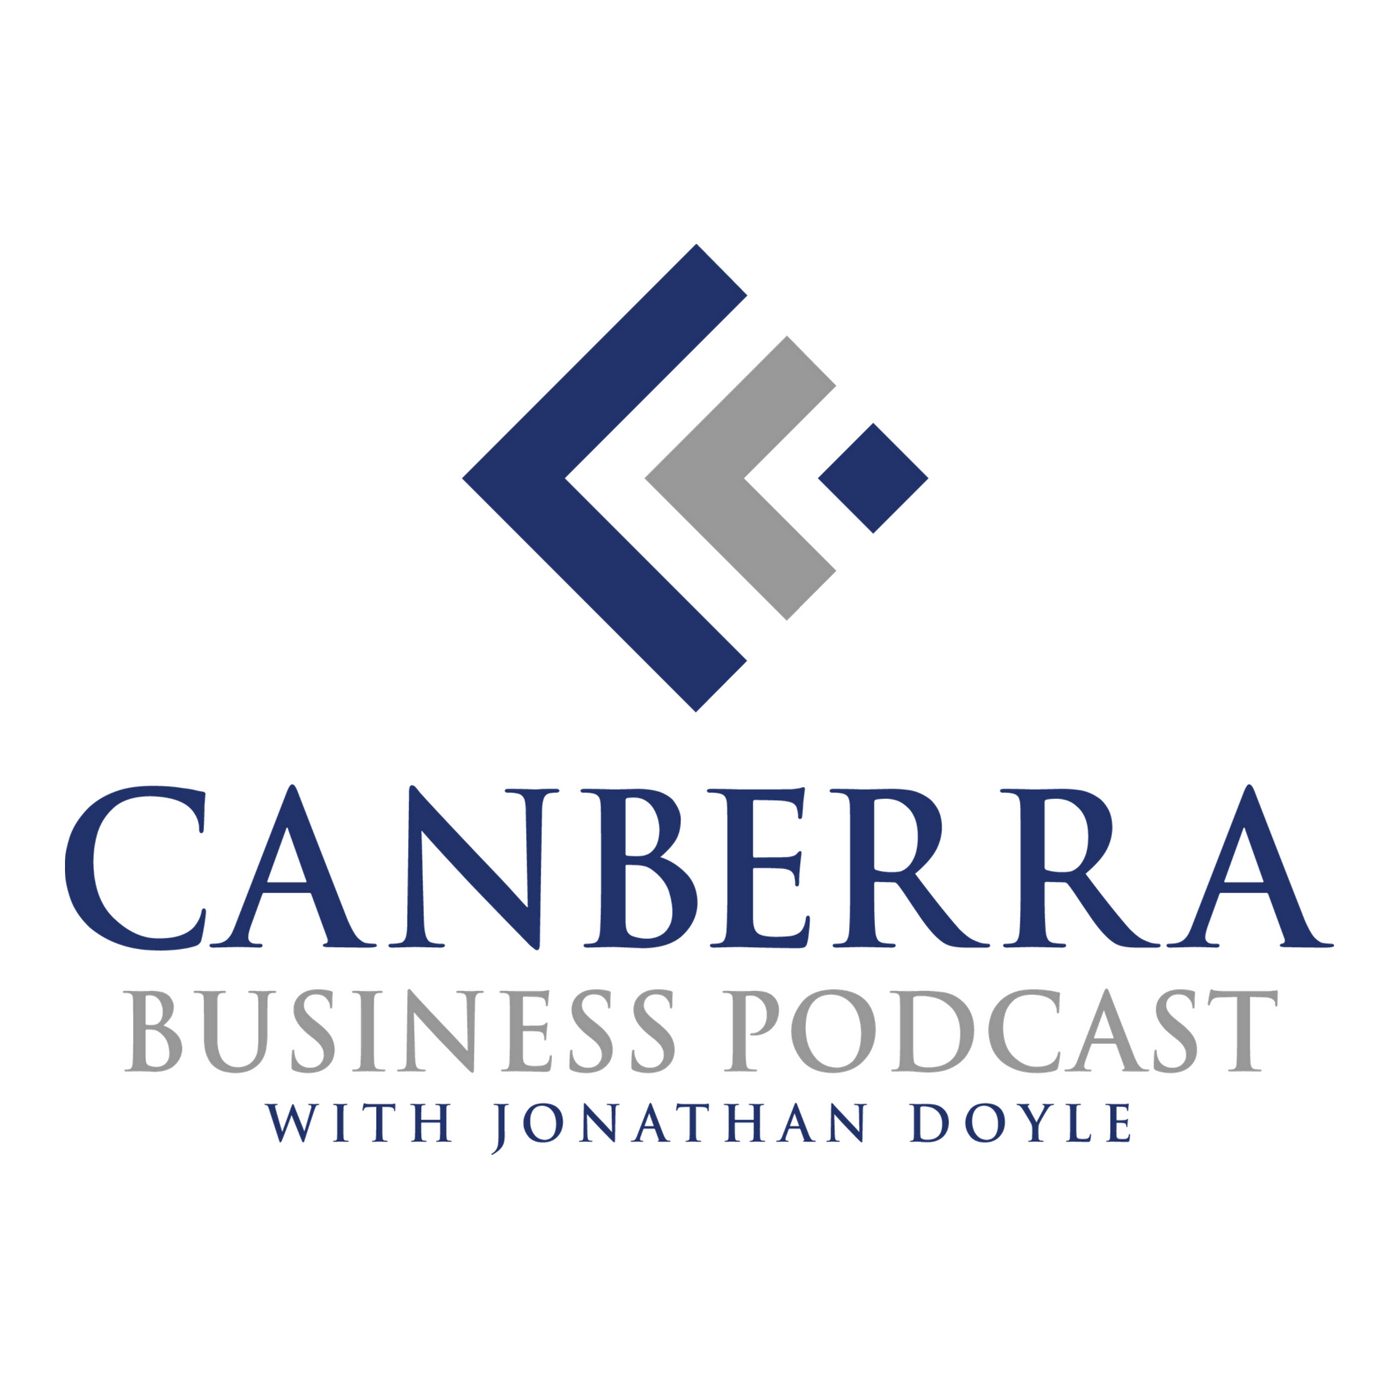 The Canberra Business Podcast show art